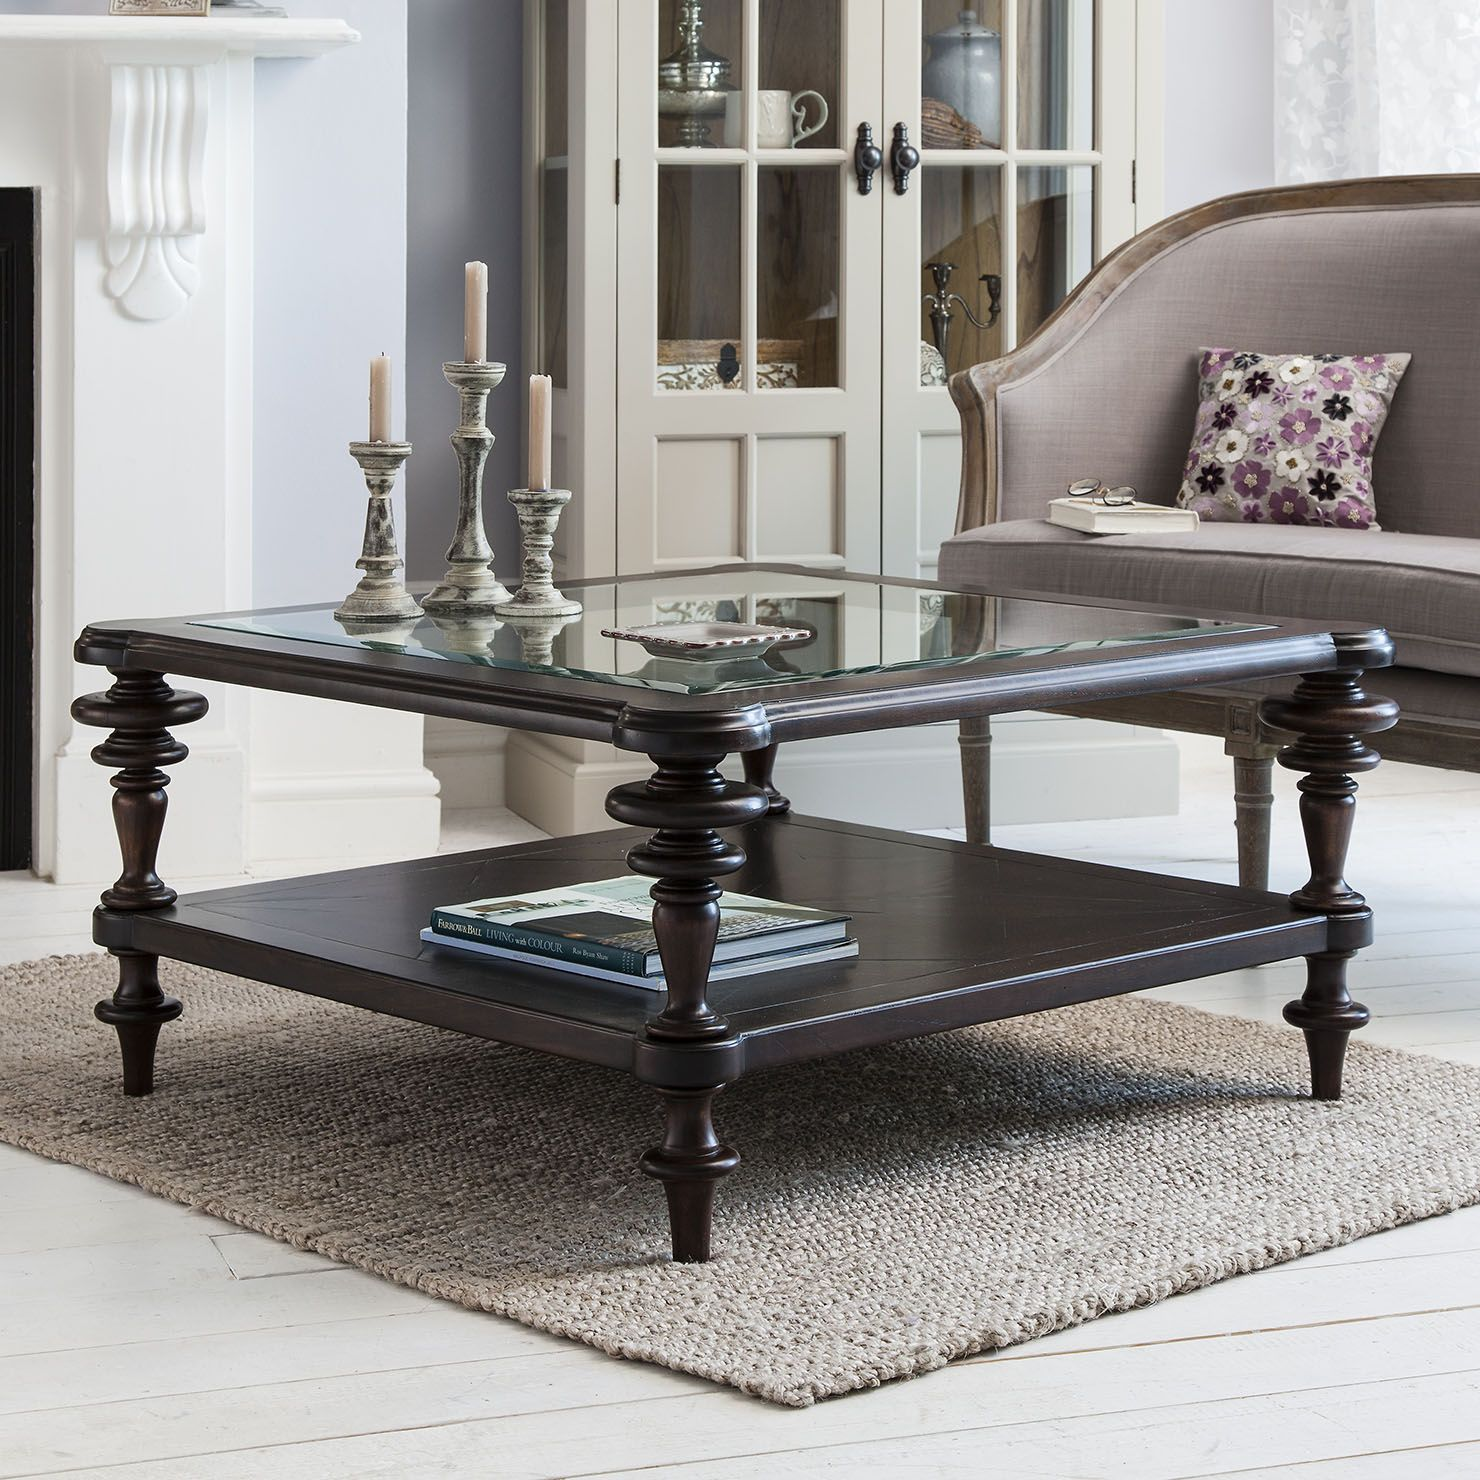 Santa Monica Square Coffee Table, Weathered http://www.achica.com/product/MTRA-00073548/santa-monica-square-coffee-table-weathered/